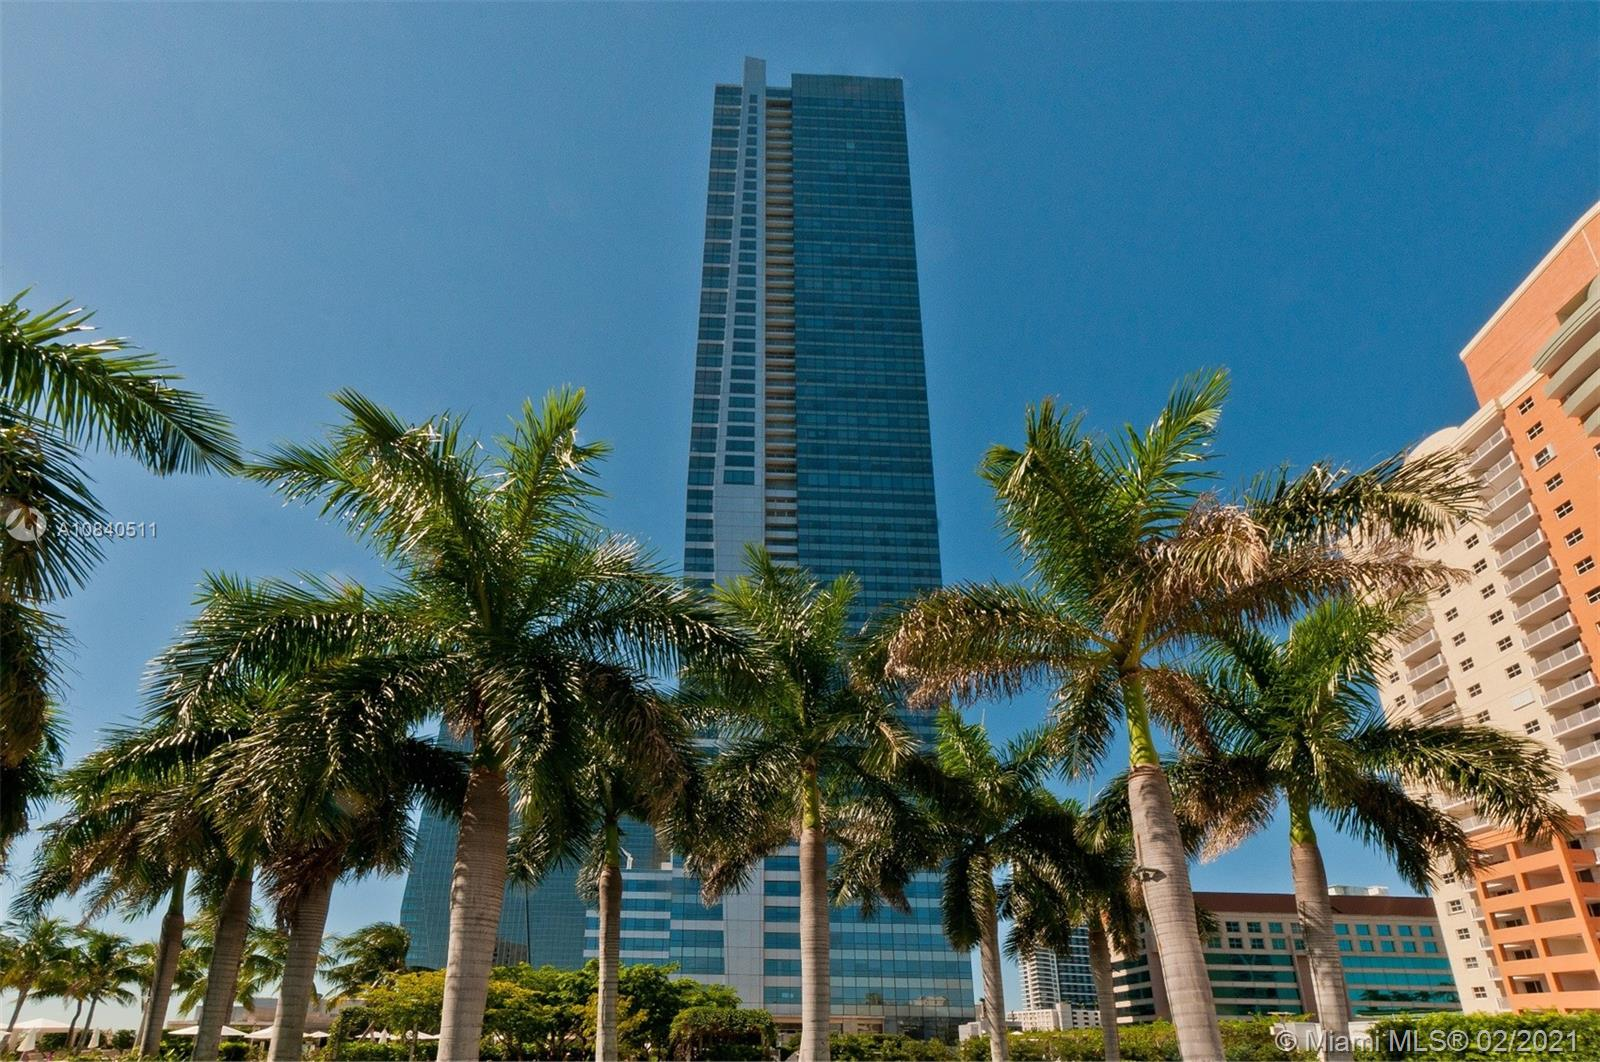 THIS IMMACULATE RESIDENCE ON THE 59TH FLOOR AT THE FOUR SEASONS RESIDENCES OFFERS BREATH-TAKING VIEWS OF THE ATLANTIC OCEAN AND BISCAYNE BAY AS FAR AS THE EYES CAN SEE. TOP-OF-THE-LINE FINISHES INCLUDING, MARBLE FLOORS, HUGE MASTER BEDROOM WITH HIS & HER WALK-IN CLOSETS, POGGENPOHL KITCHEN CABINETS, GRANITE COUNTER TOPS, MIELE, VIKING AND SUB-ZERO APPLIANCES, LAUNDRY ROOM IN UNIT. ENJOY OUTSTANDING 5 STAR AMENITIES, 24 HOUR CONCIERGE- VALET- SECURITY, 50,000 SQ. FT. GYM & SPA, OWNERS' LOUNGE AND MORE!